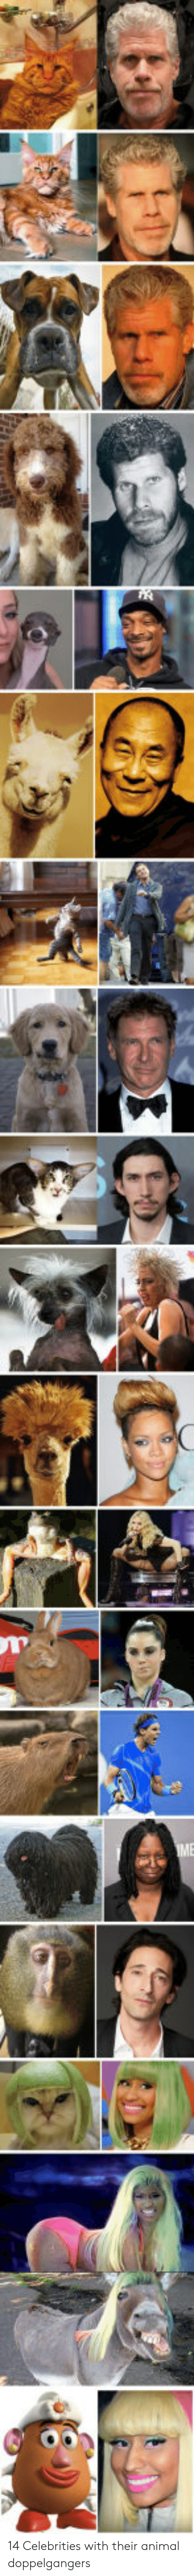 Animal, Celebrities, and Their: 14 Celebrities with their animal doppelgangers